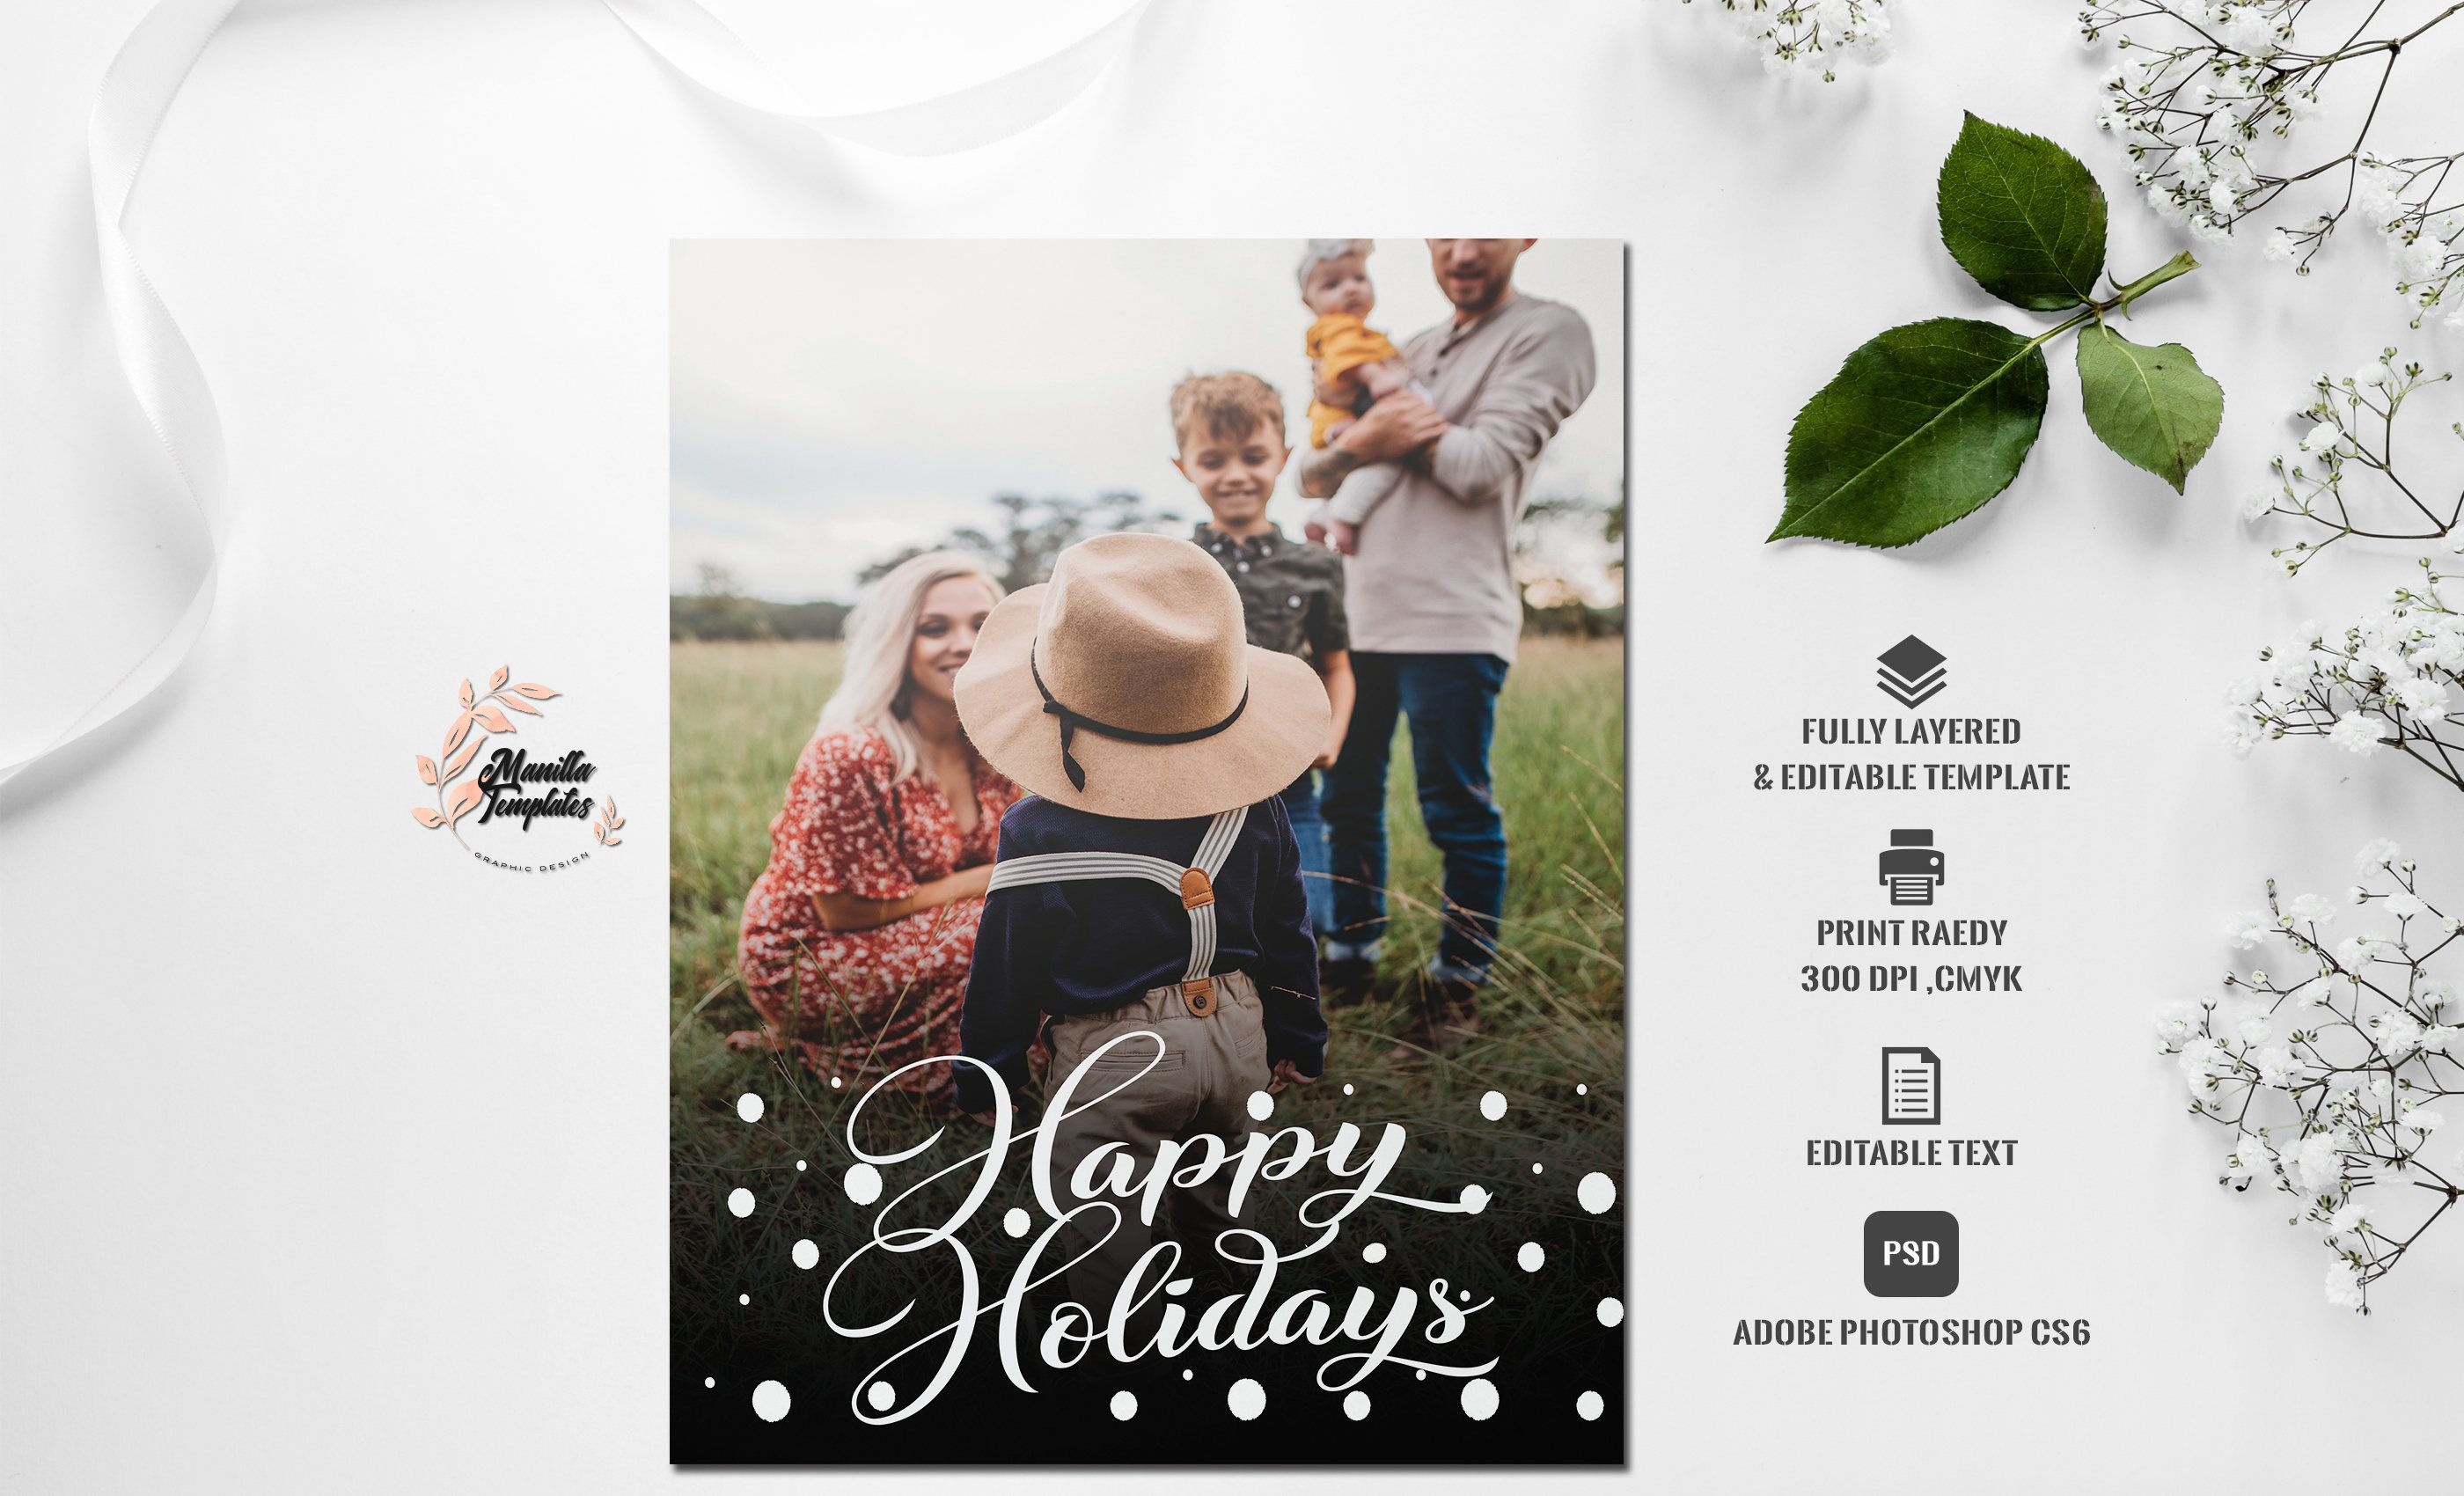 Christmas Card Photoshop Template Etsy Christmas Card Photoshop Photoshop Template Photoshop